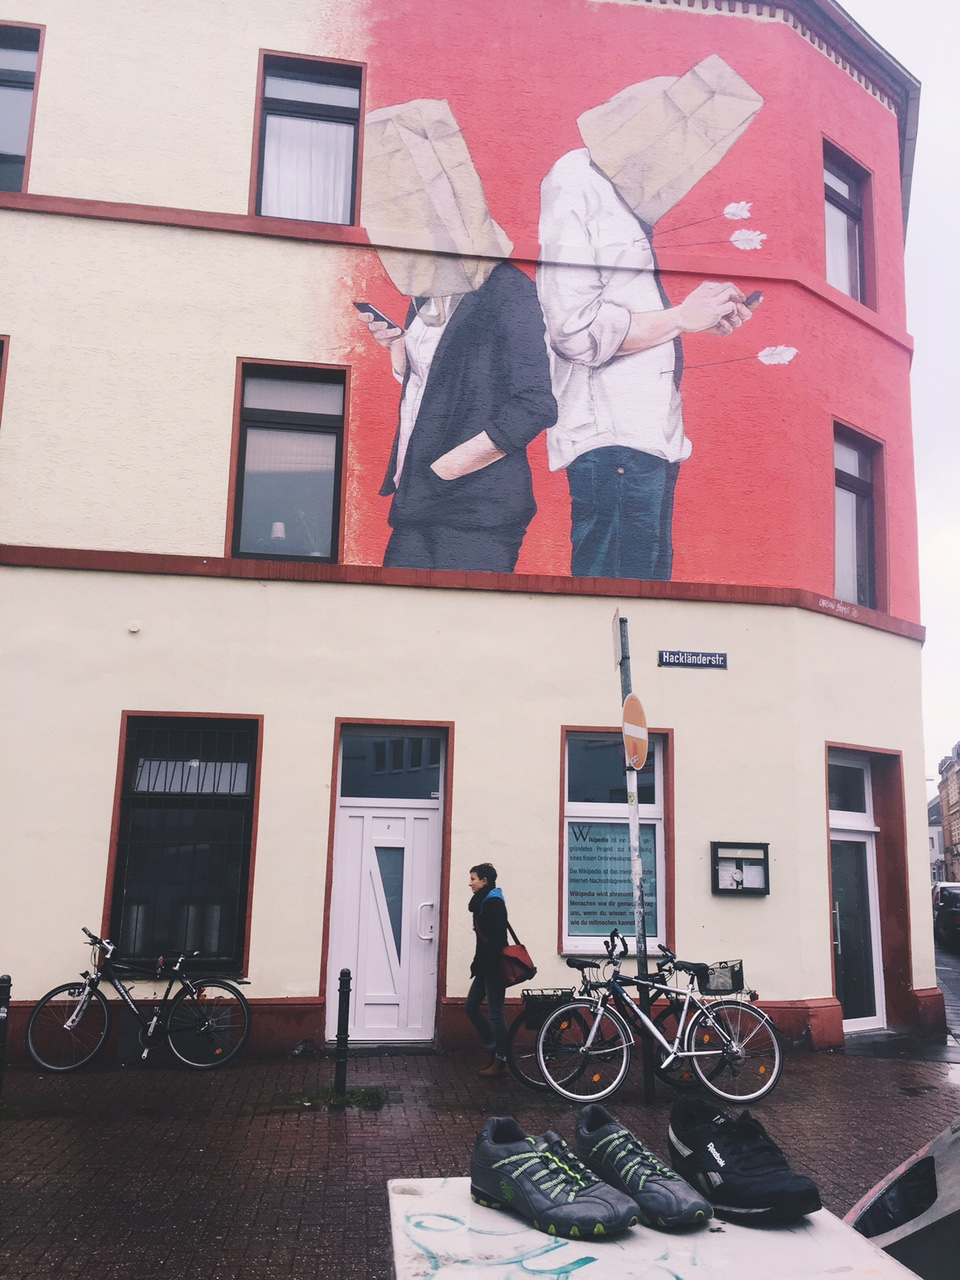 10 street artists whose work you can discover in germany